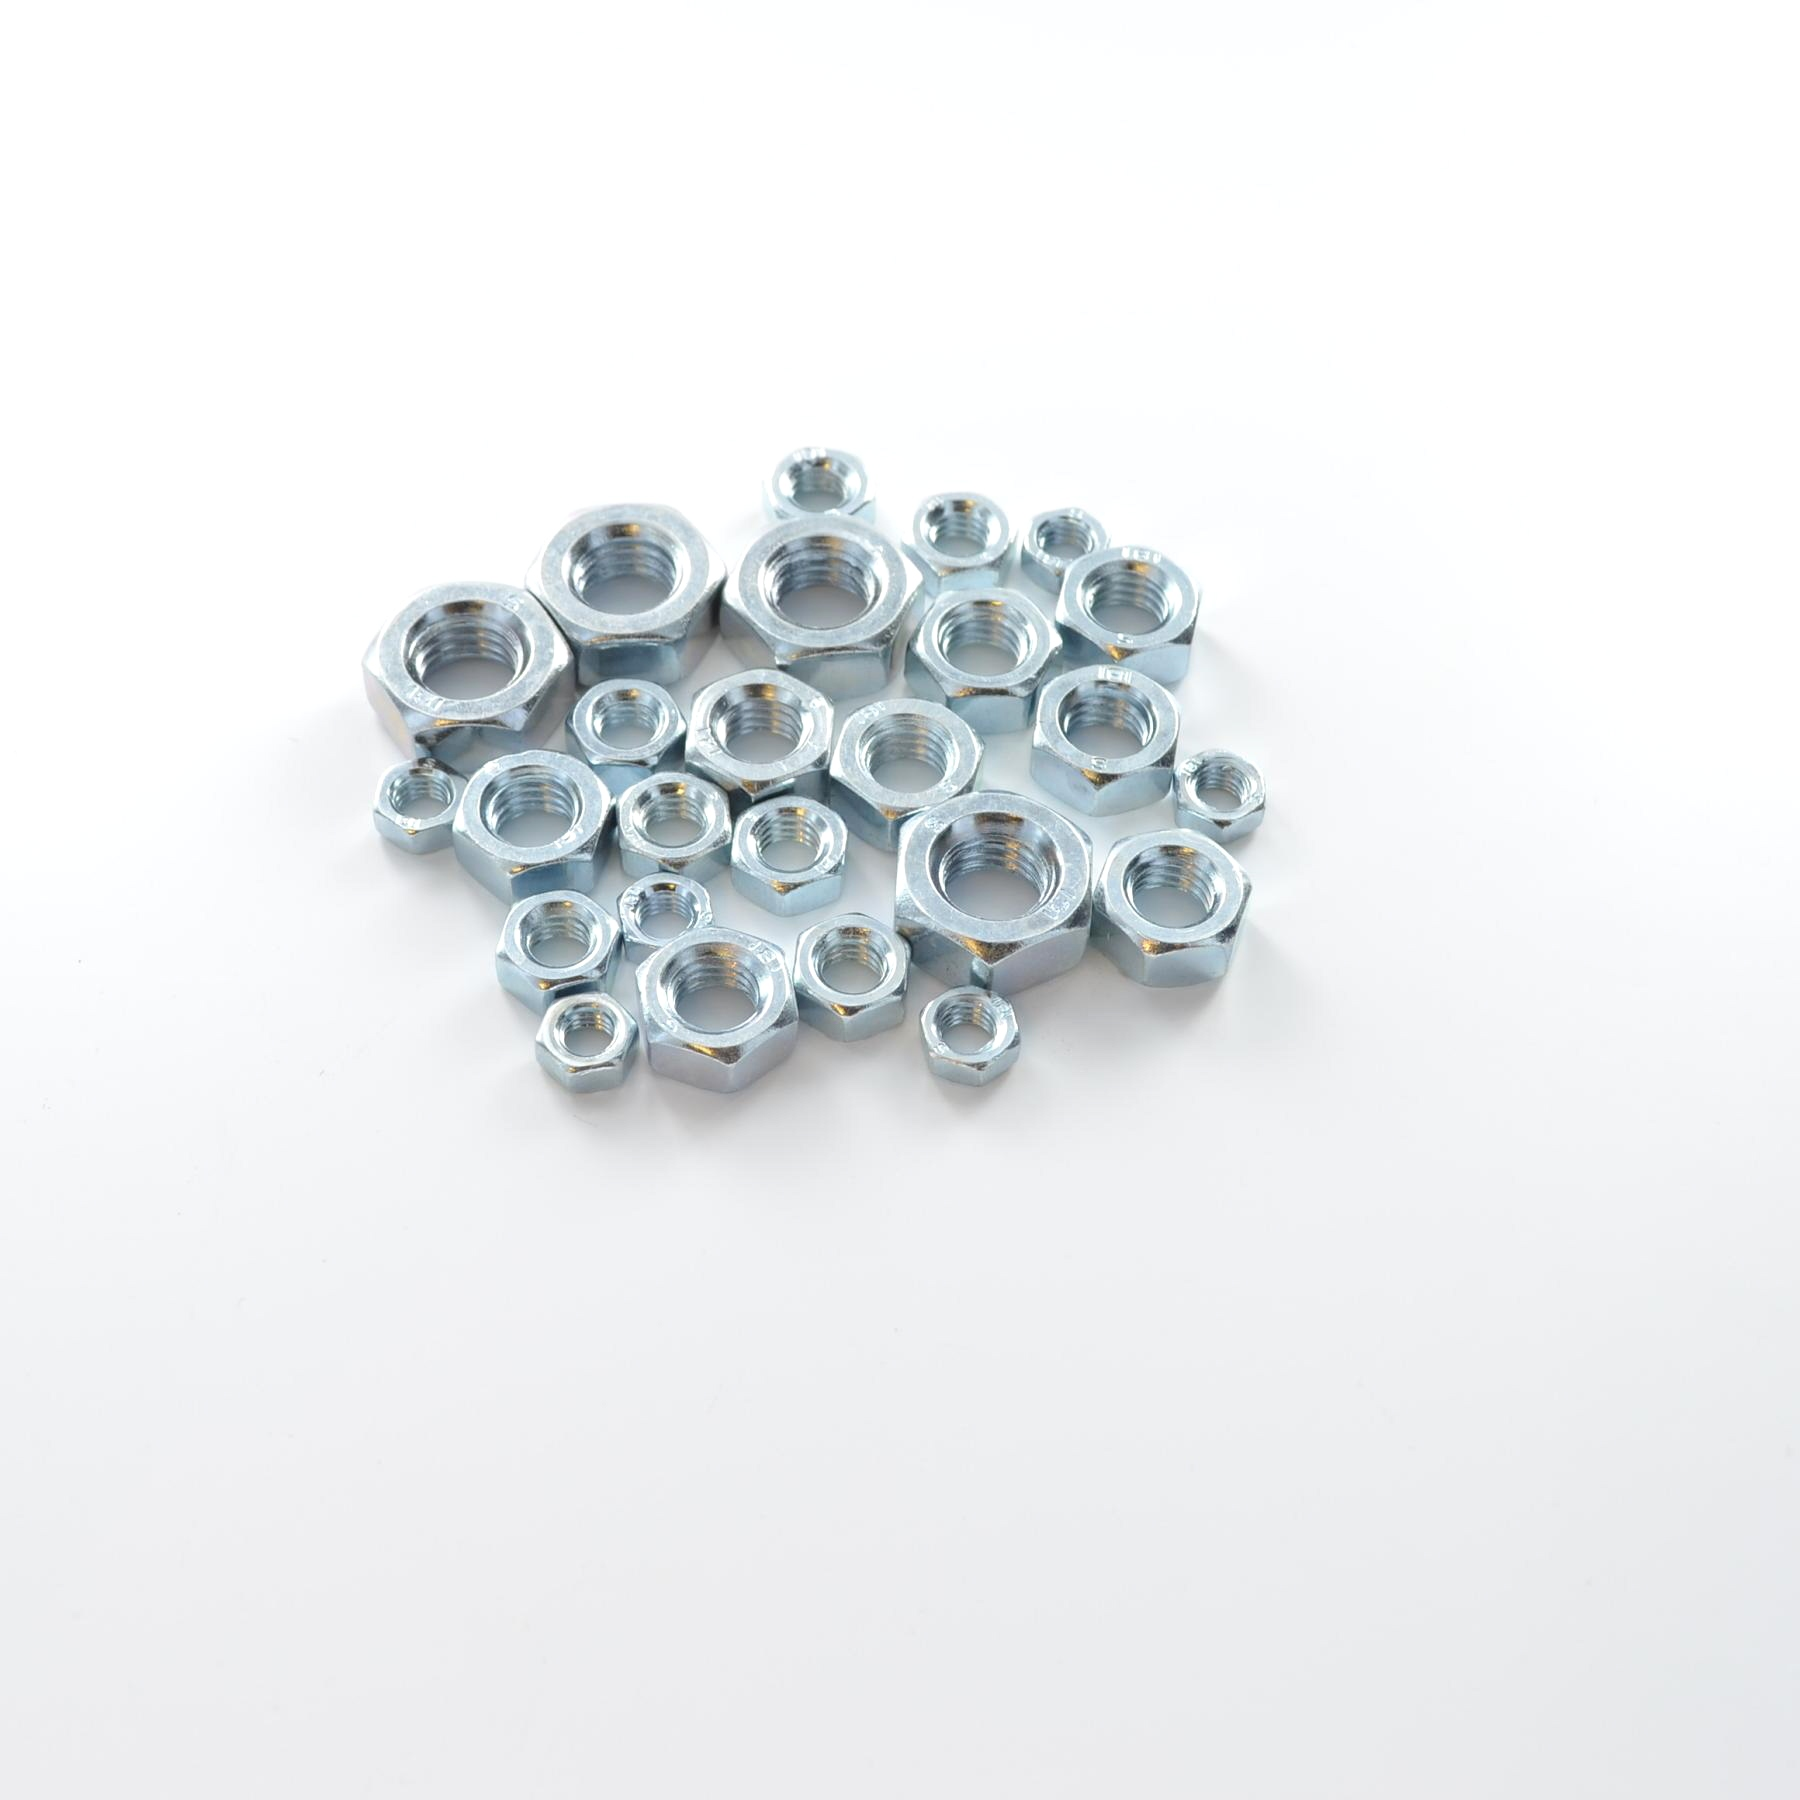 STARPACK ASSORTED HEX NUTS STEEL BZP QTY:25